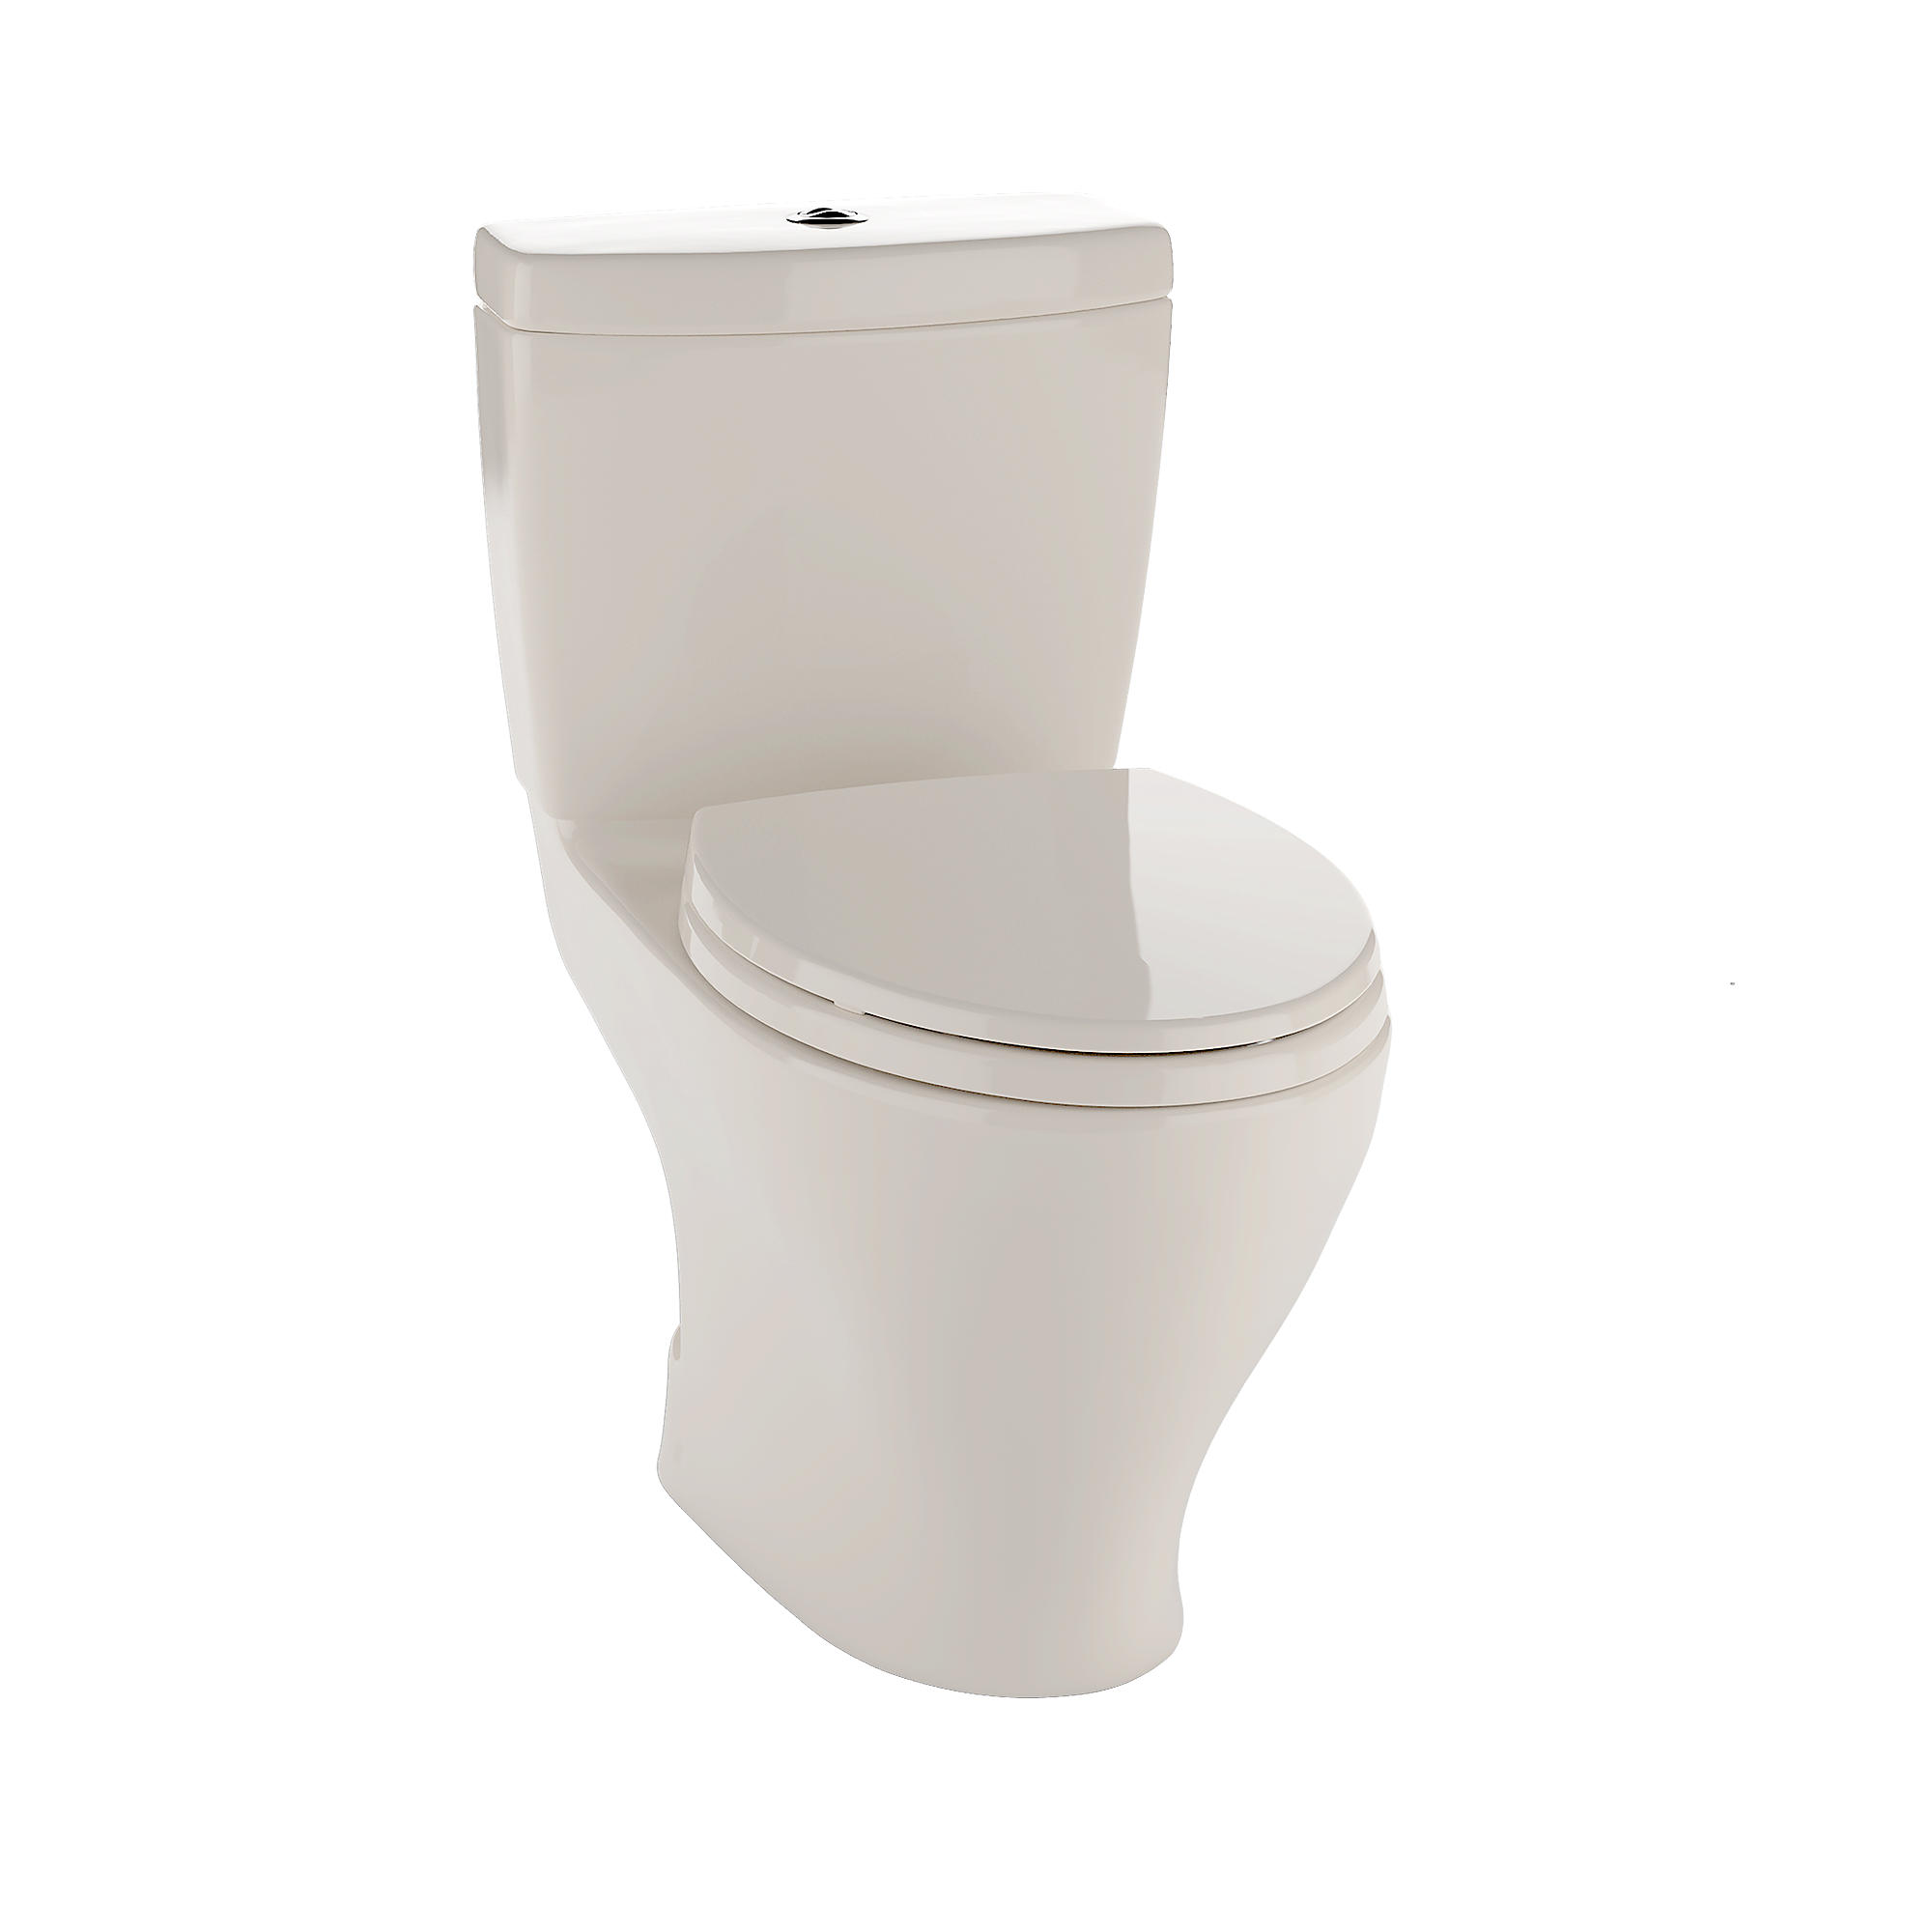 Cst416m 12 aquia ii dual flush two piece toilet  1 6 gpf   0 9 gpf  elongated bowl 0